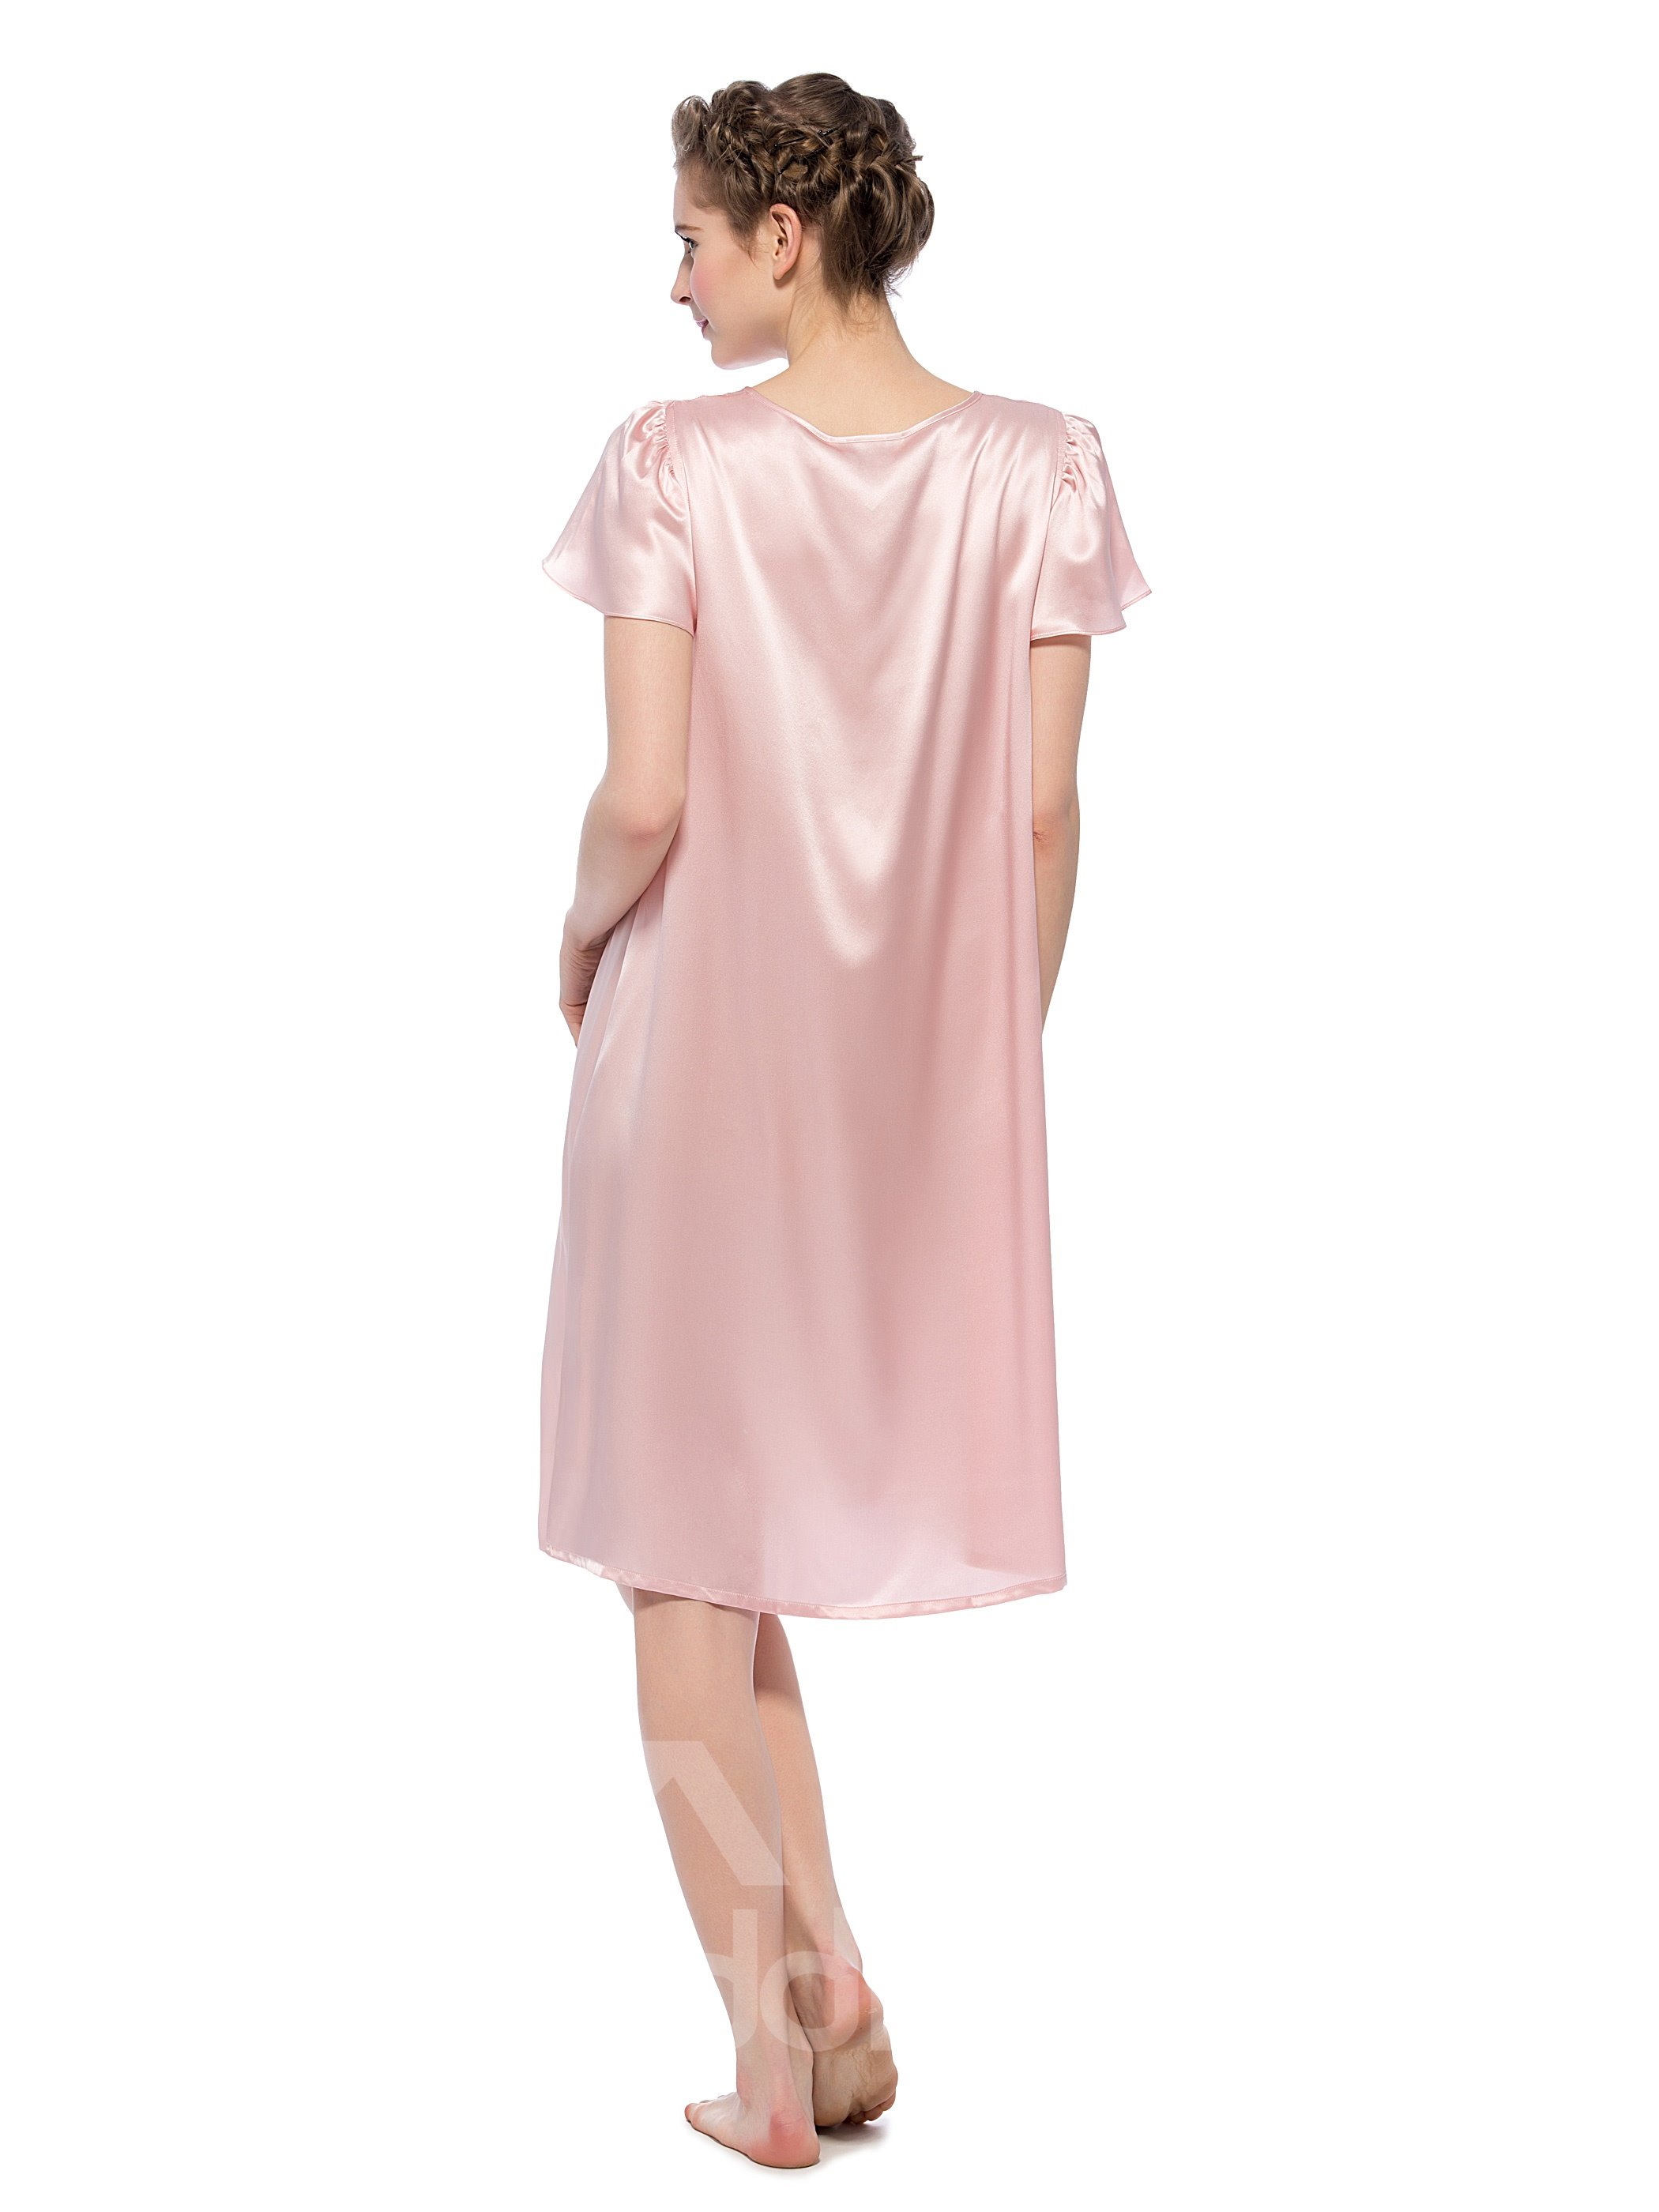 Scoop Neck With Sheer Fabric Mid-length Silk Nightgown